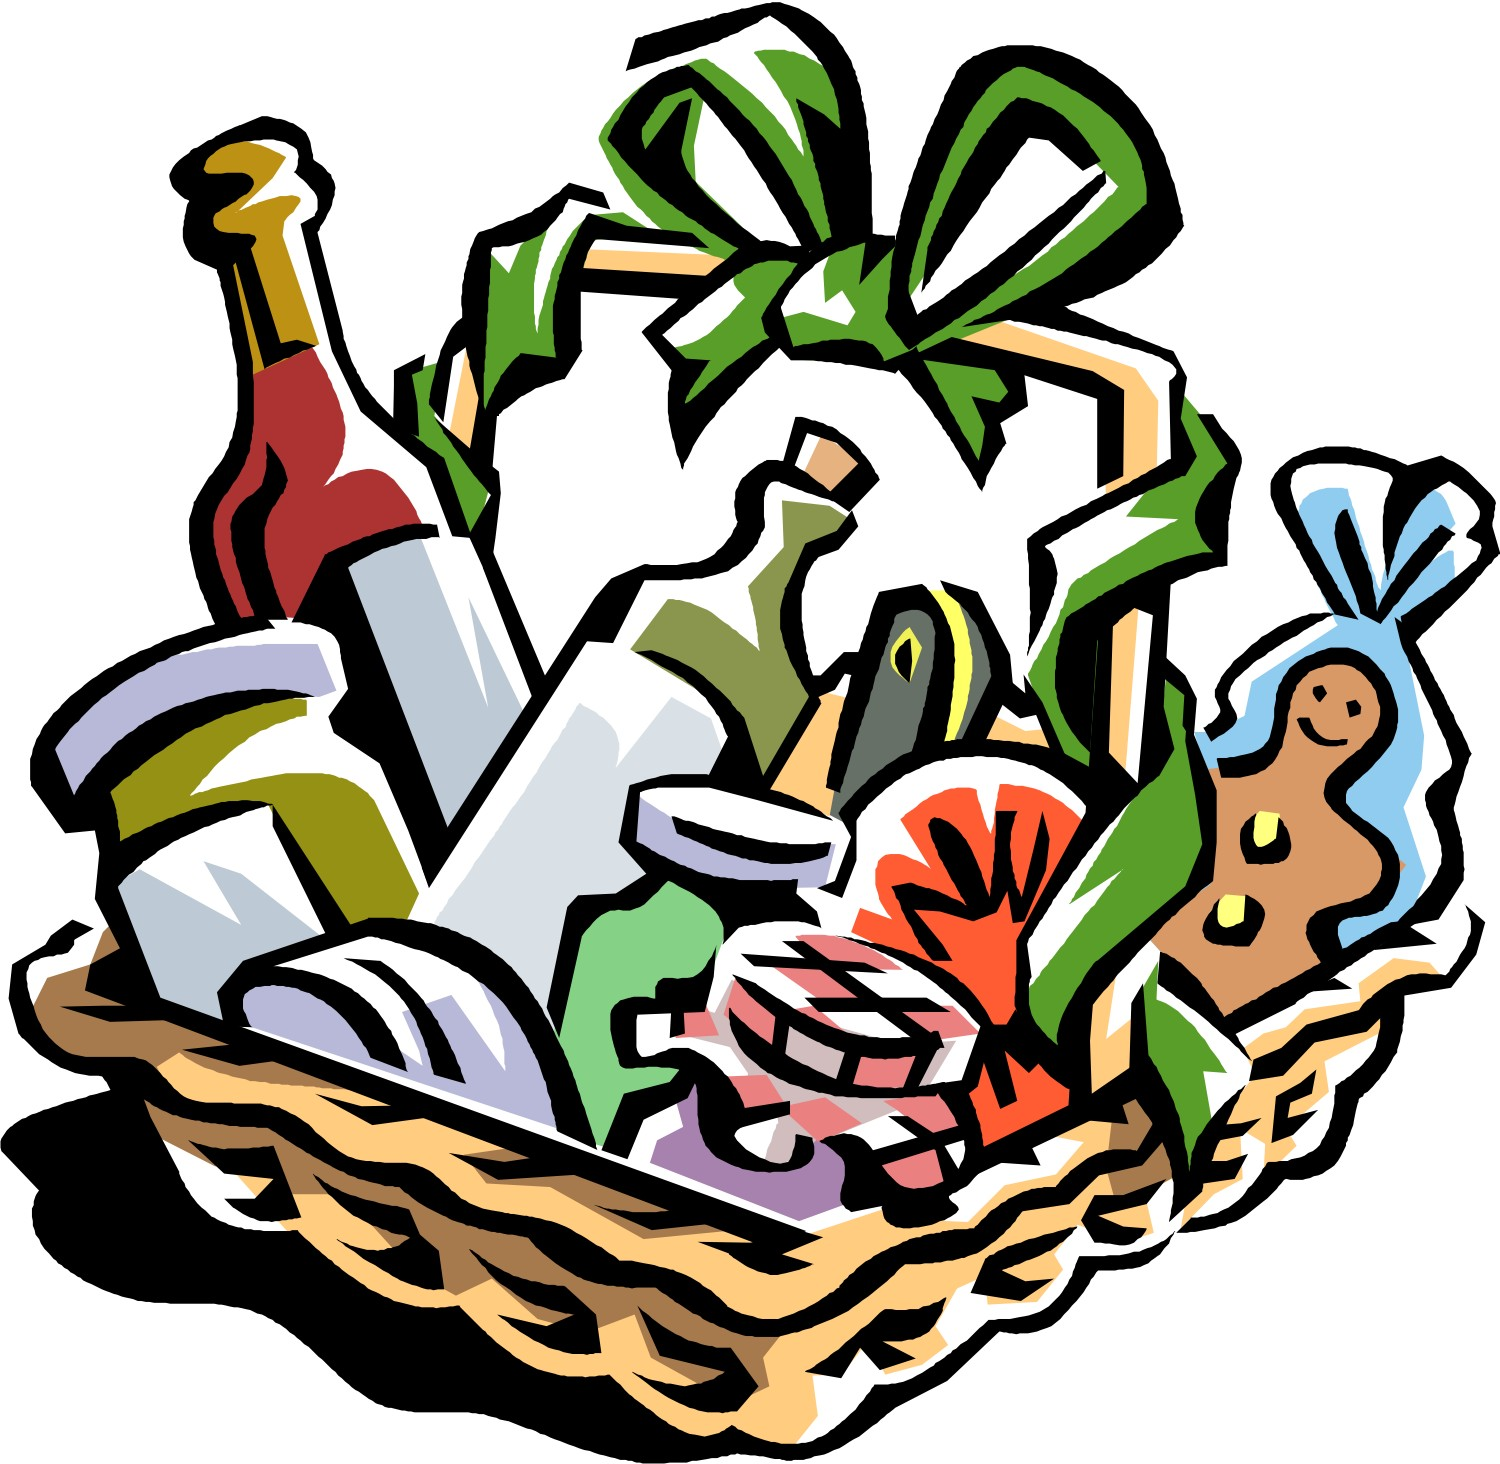 Gift clipart prize basket. Free charity cliparts download